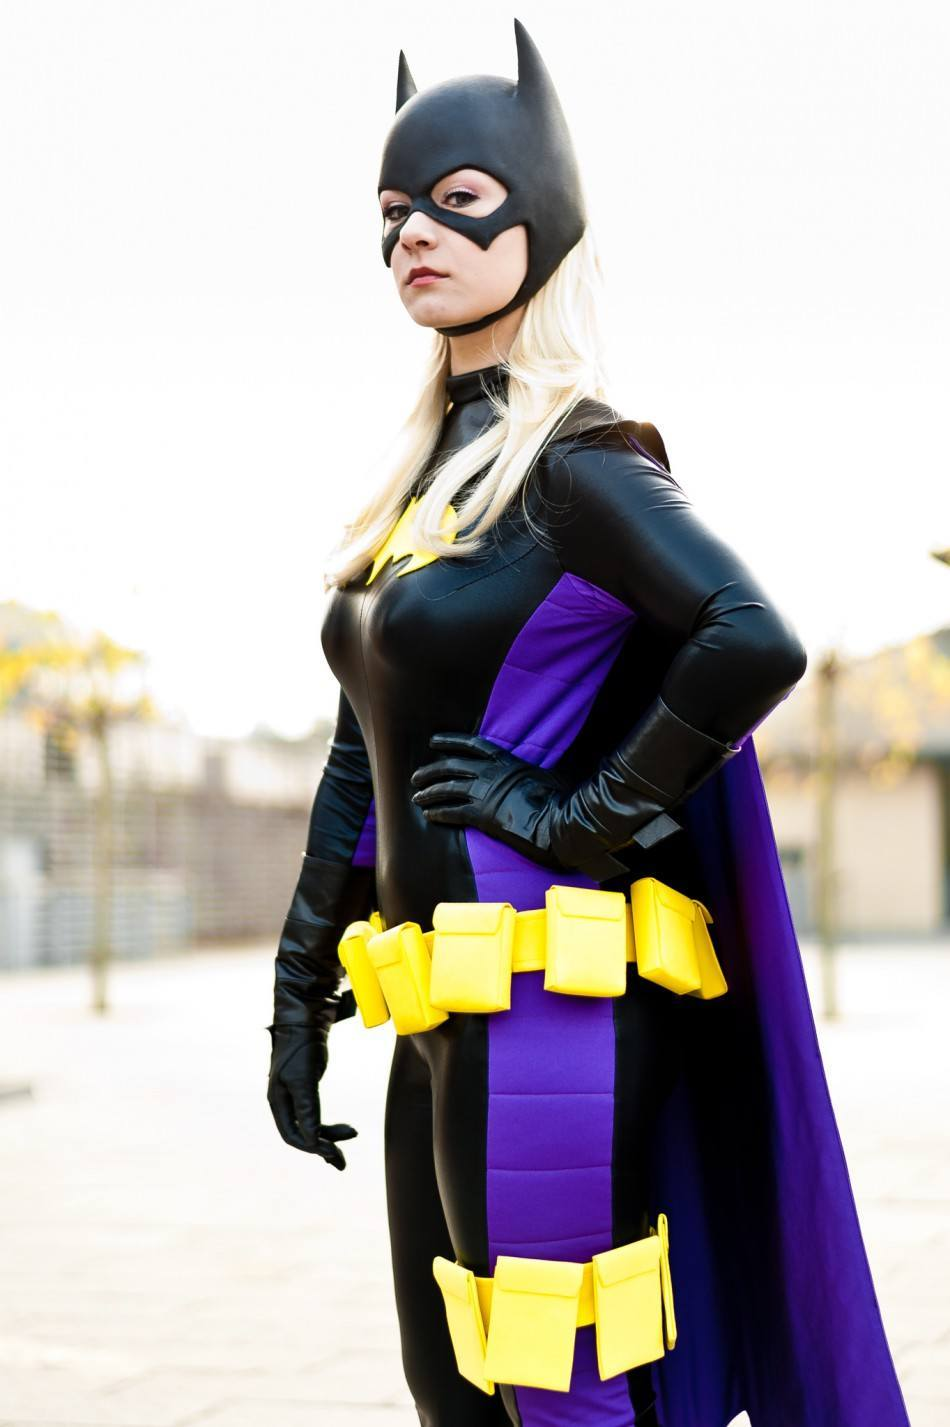 Batgirl cosplay by Sina Voss - Processed